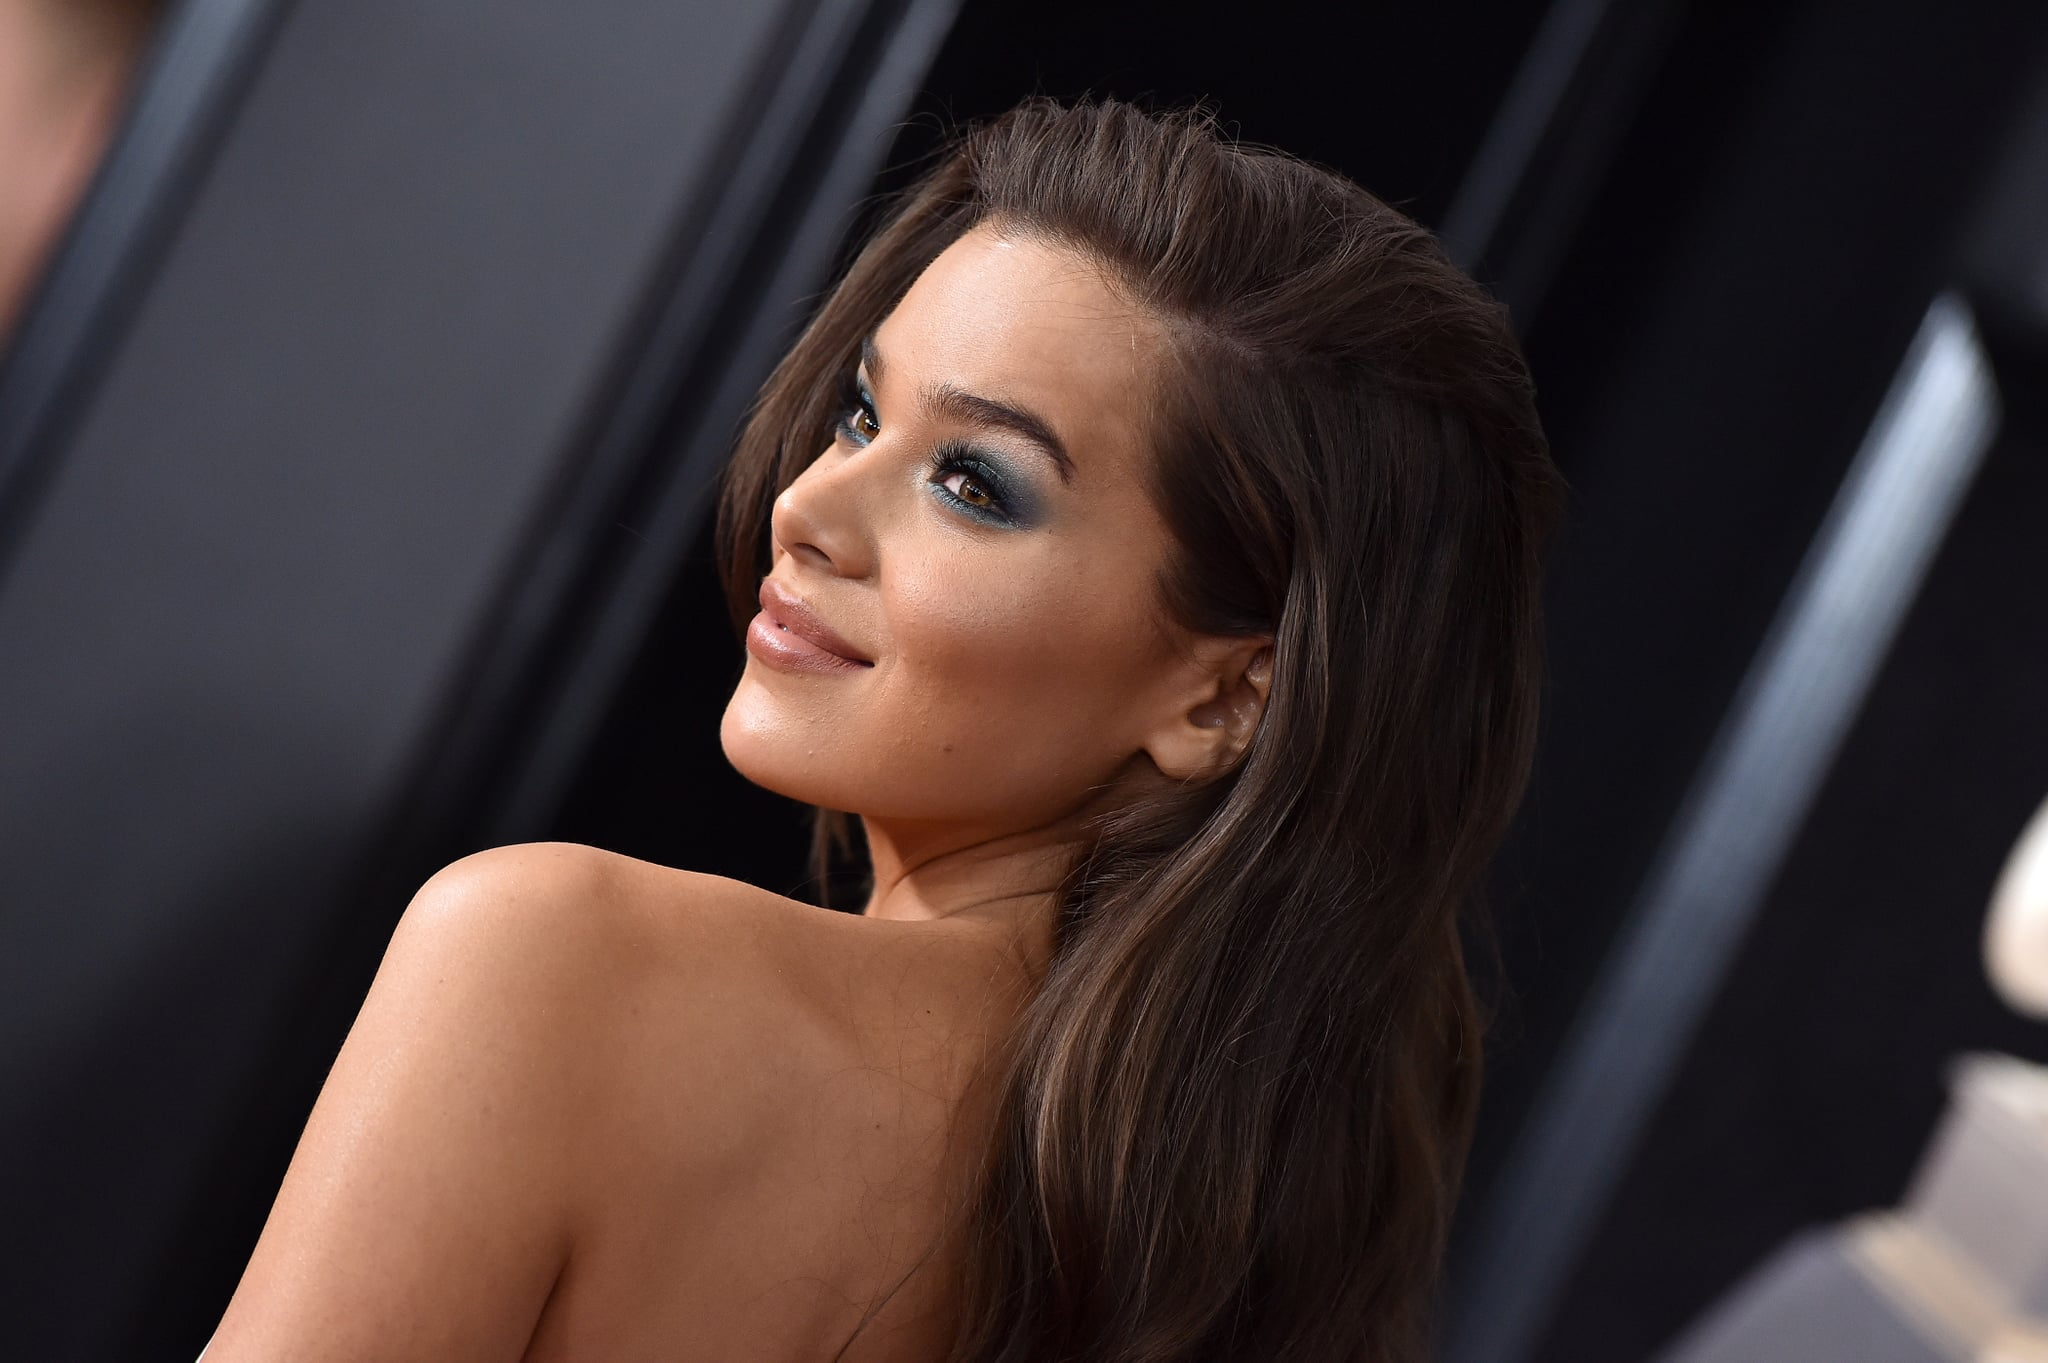 NEW YORK, NY - JANUARY 28:  Actress/singer Hailee Steinfeld attends the 60th Annual GRAMMY Awards at Madison Square Garden on January 28, 2018 in New York City.  (Photo by Axelle/Bauer-Griffin/FilmMagic)